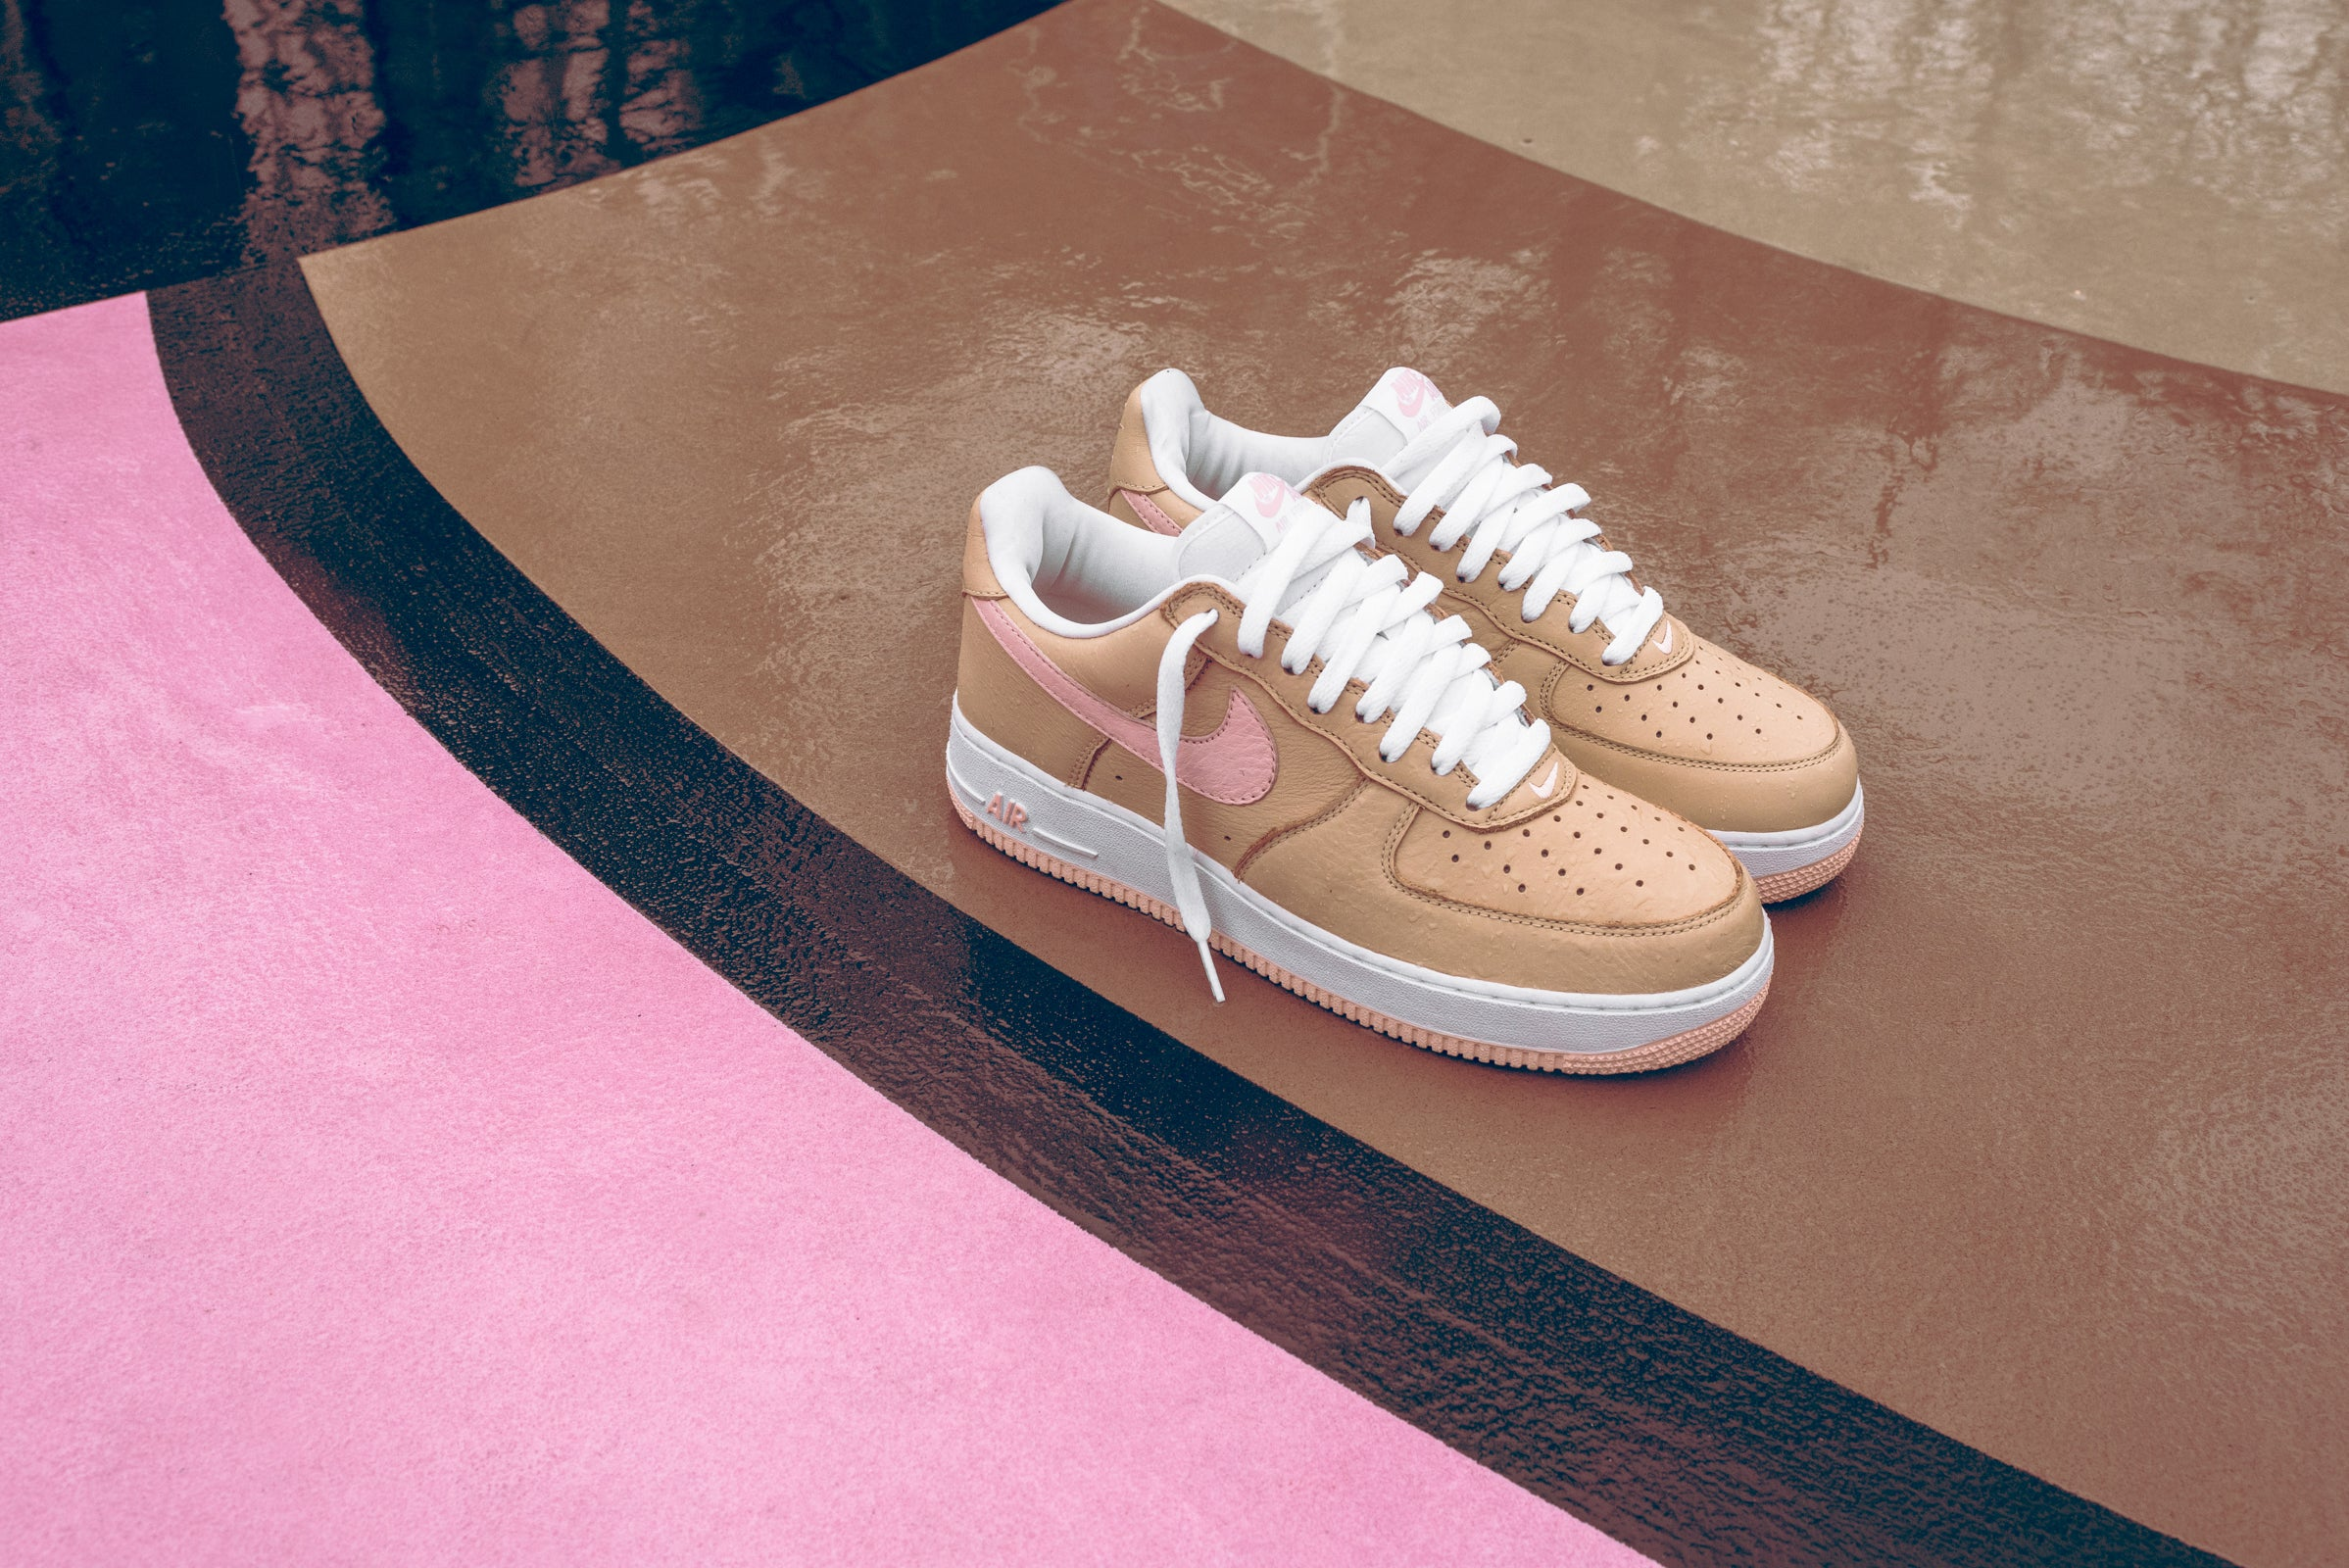 reputable site 59189 1a72c Nike and Kith Re-Launch the AF1 Linen as a Kith Miami Exclusive